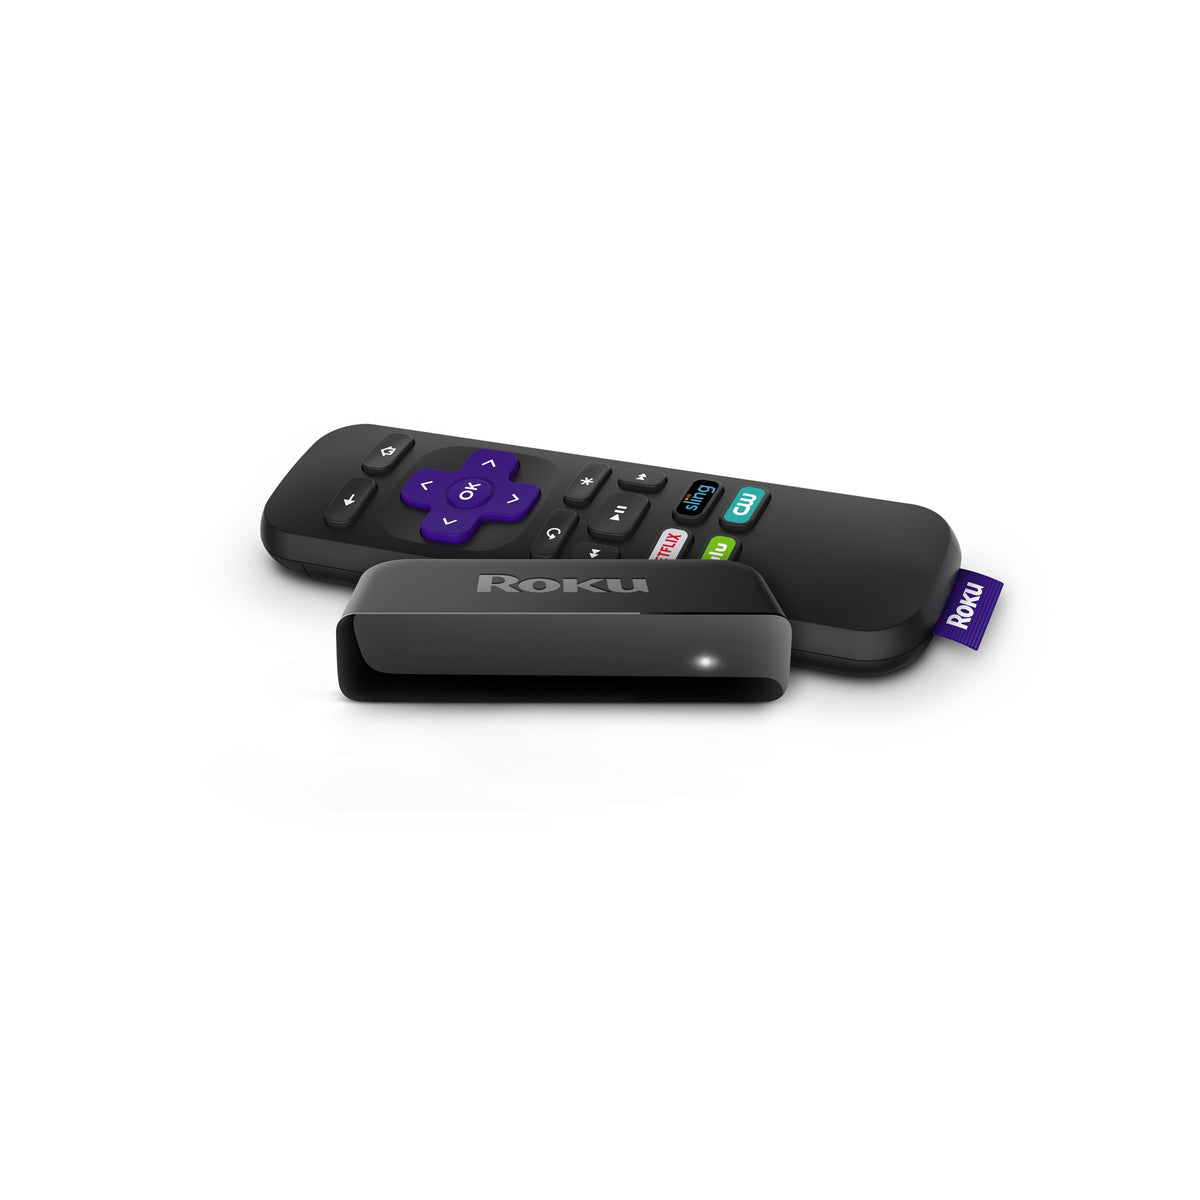 Roku Express.  Stream everything from Netflix and Prime Video, to cable alternatives like Sling TV or YouTube TV.  Roku Express is perfect for new users, but powerful enough for seasoned pros.  Easy-to-use remote and app.  Let OnTech Smart Home Techs setup your streaming devices.